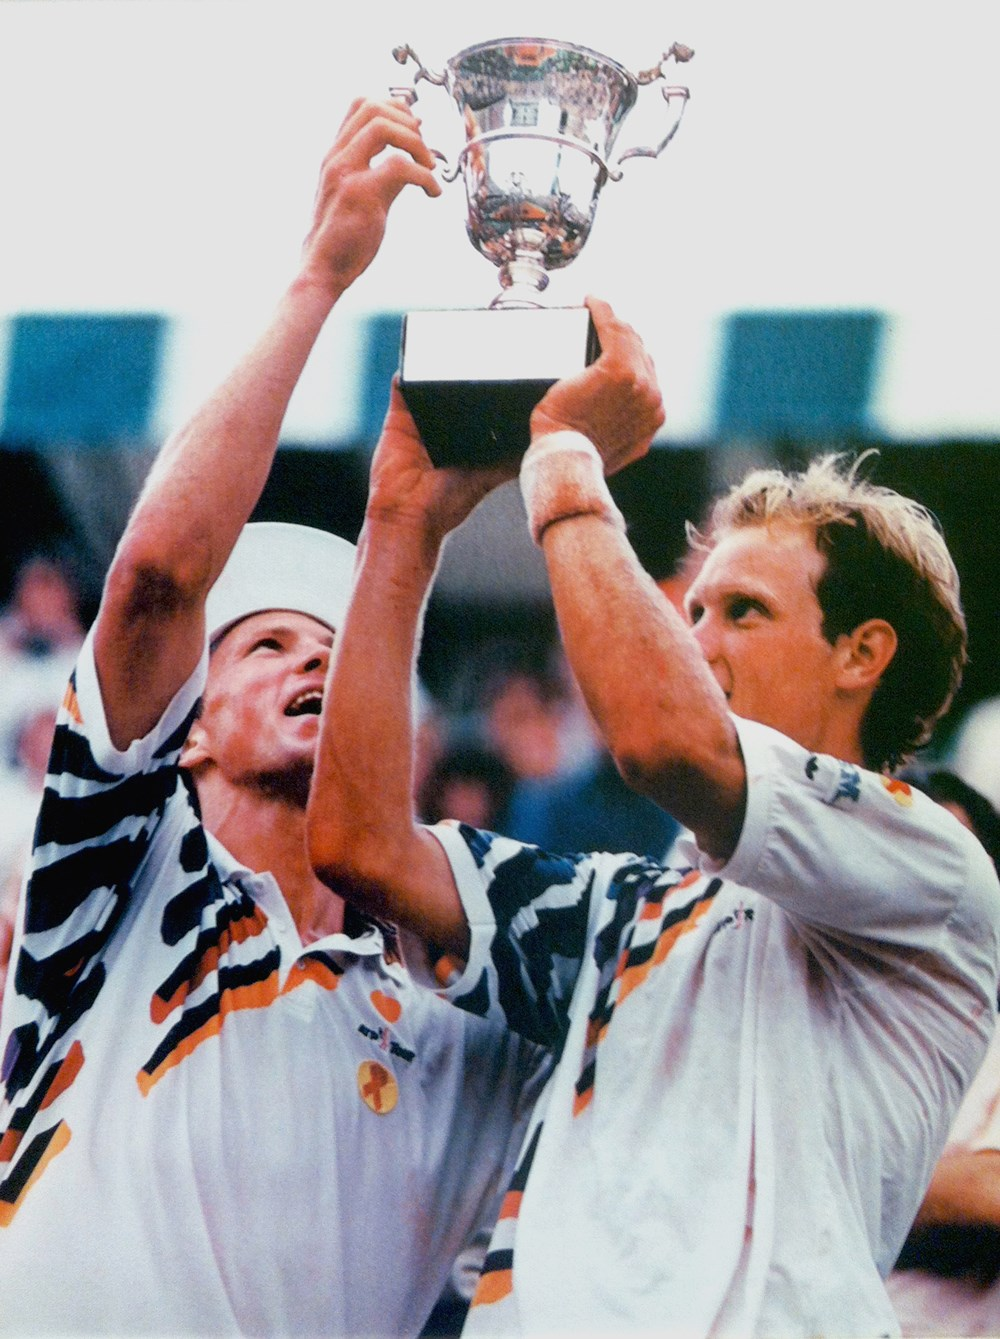 jensen_brothers_french_open_doubles_93